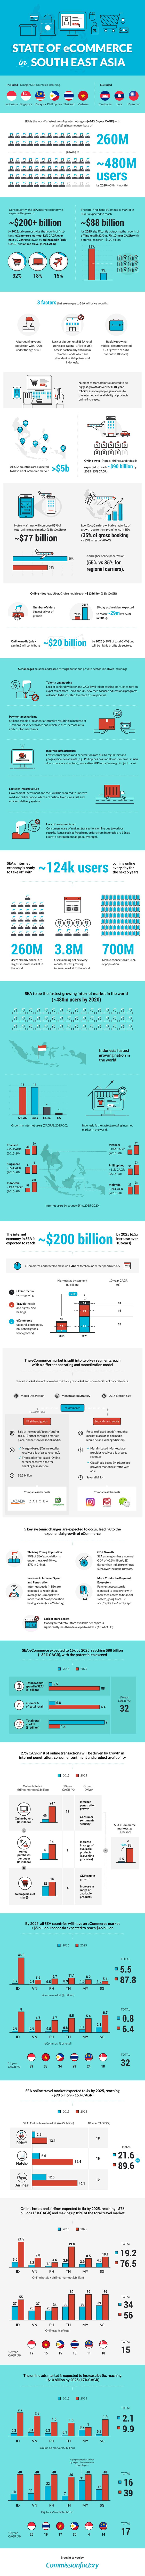 State of eCommerce in South East Asia